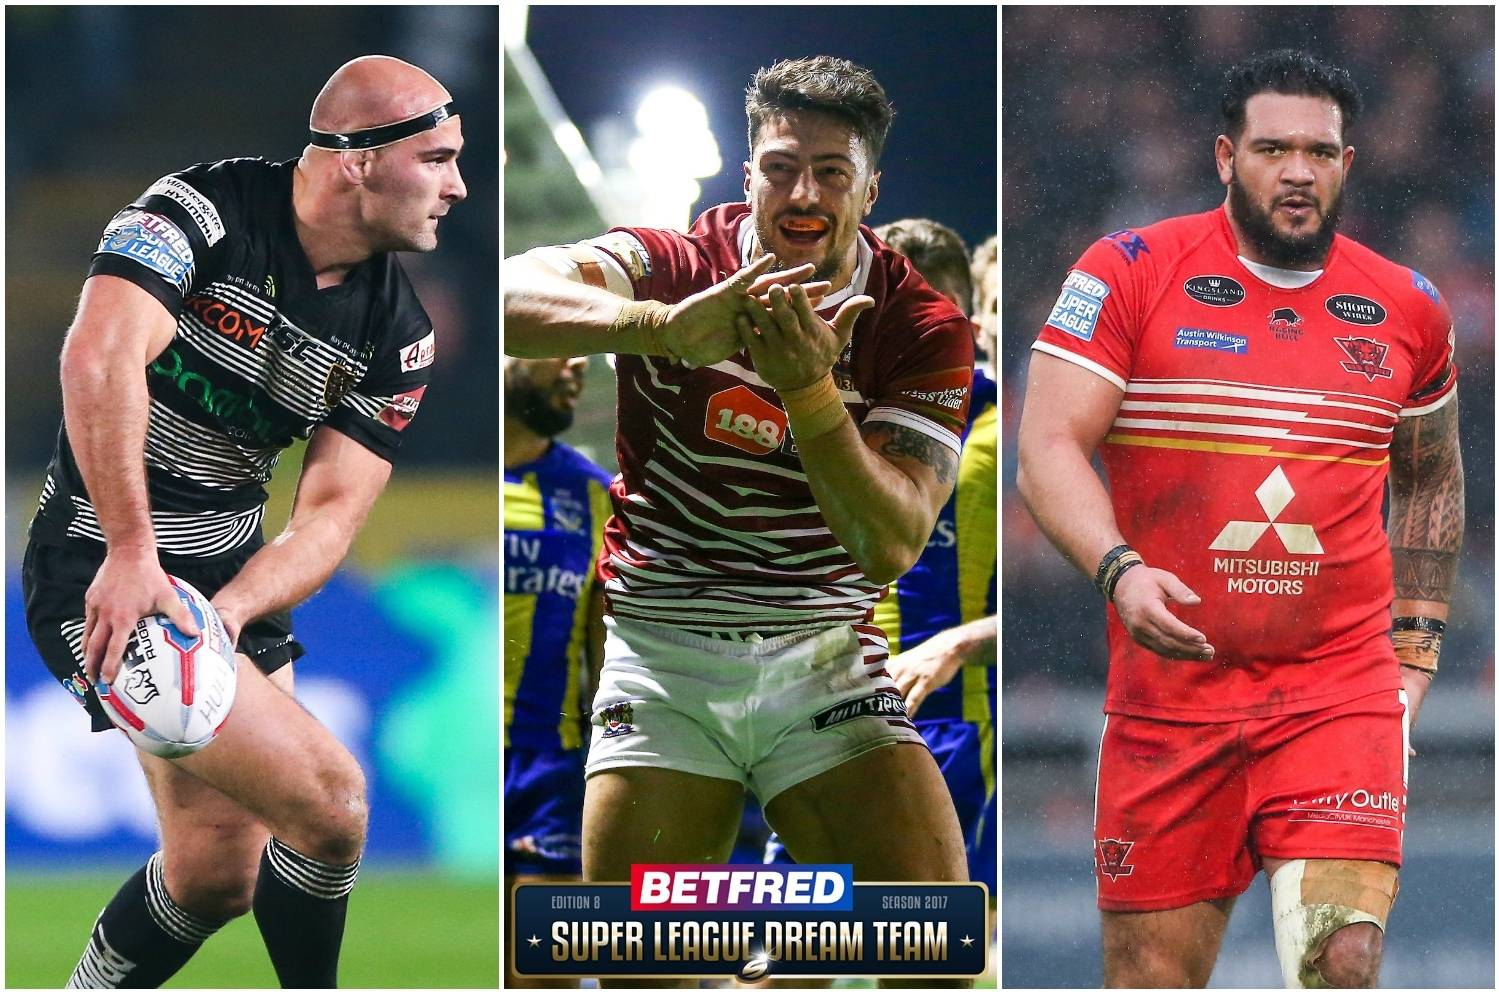 Betfred Super League Dream Team: Top 5 round 5